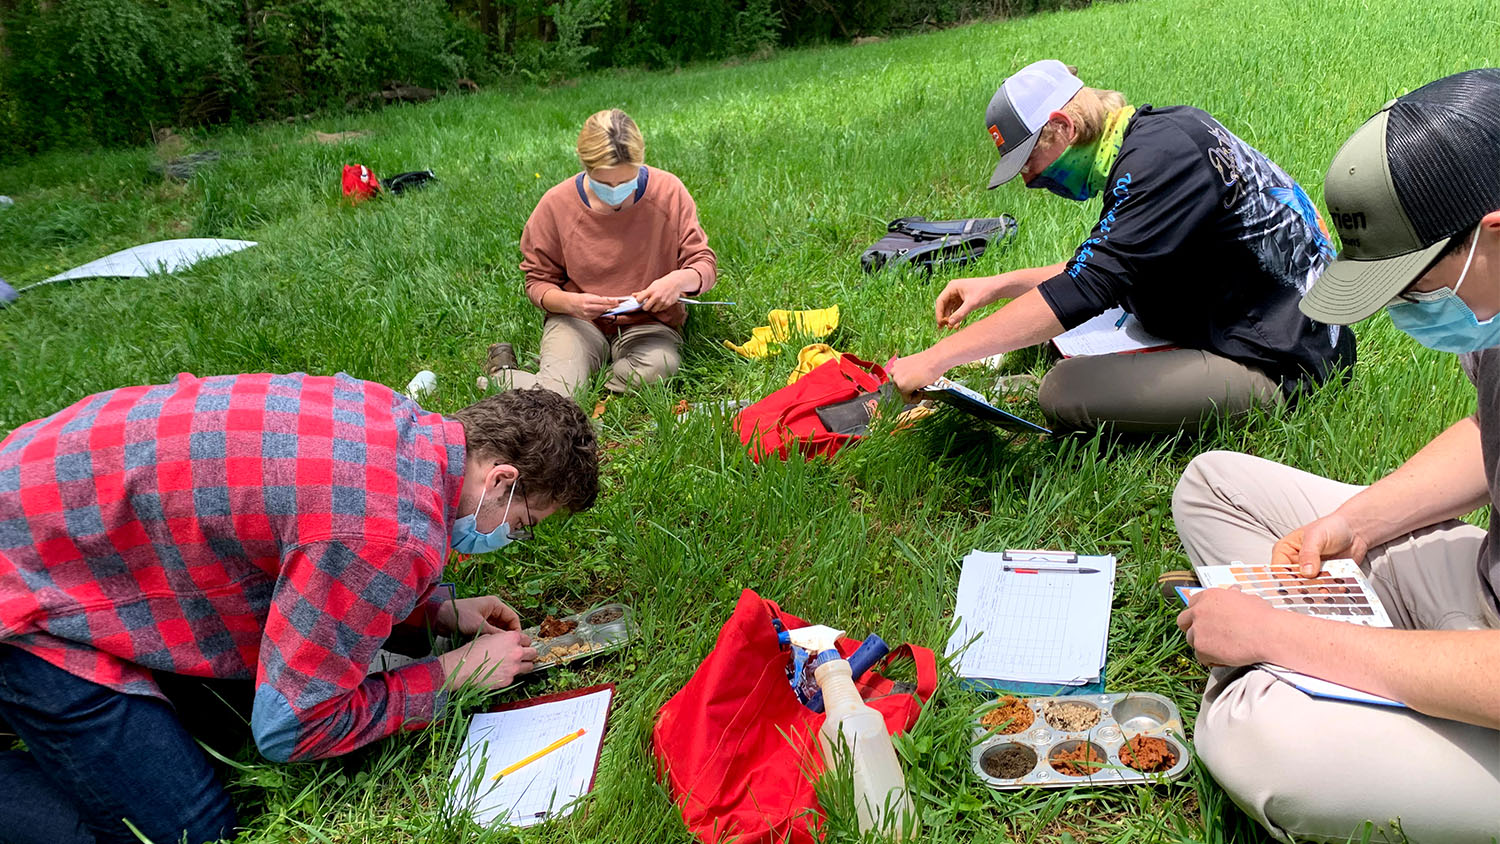 students study soil samples on grass